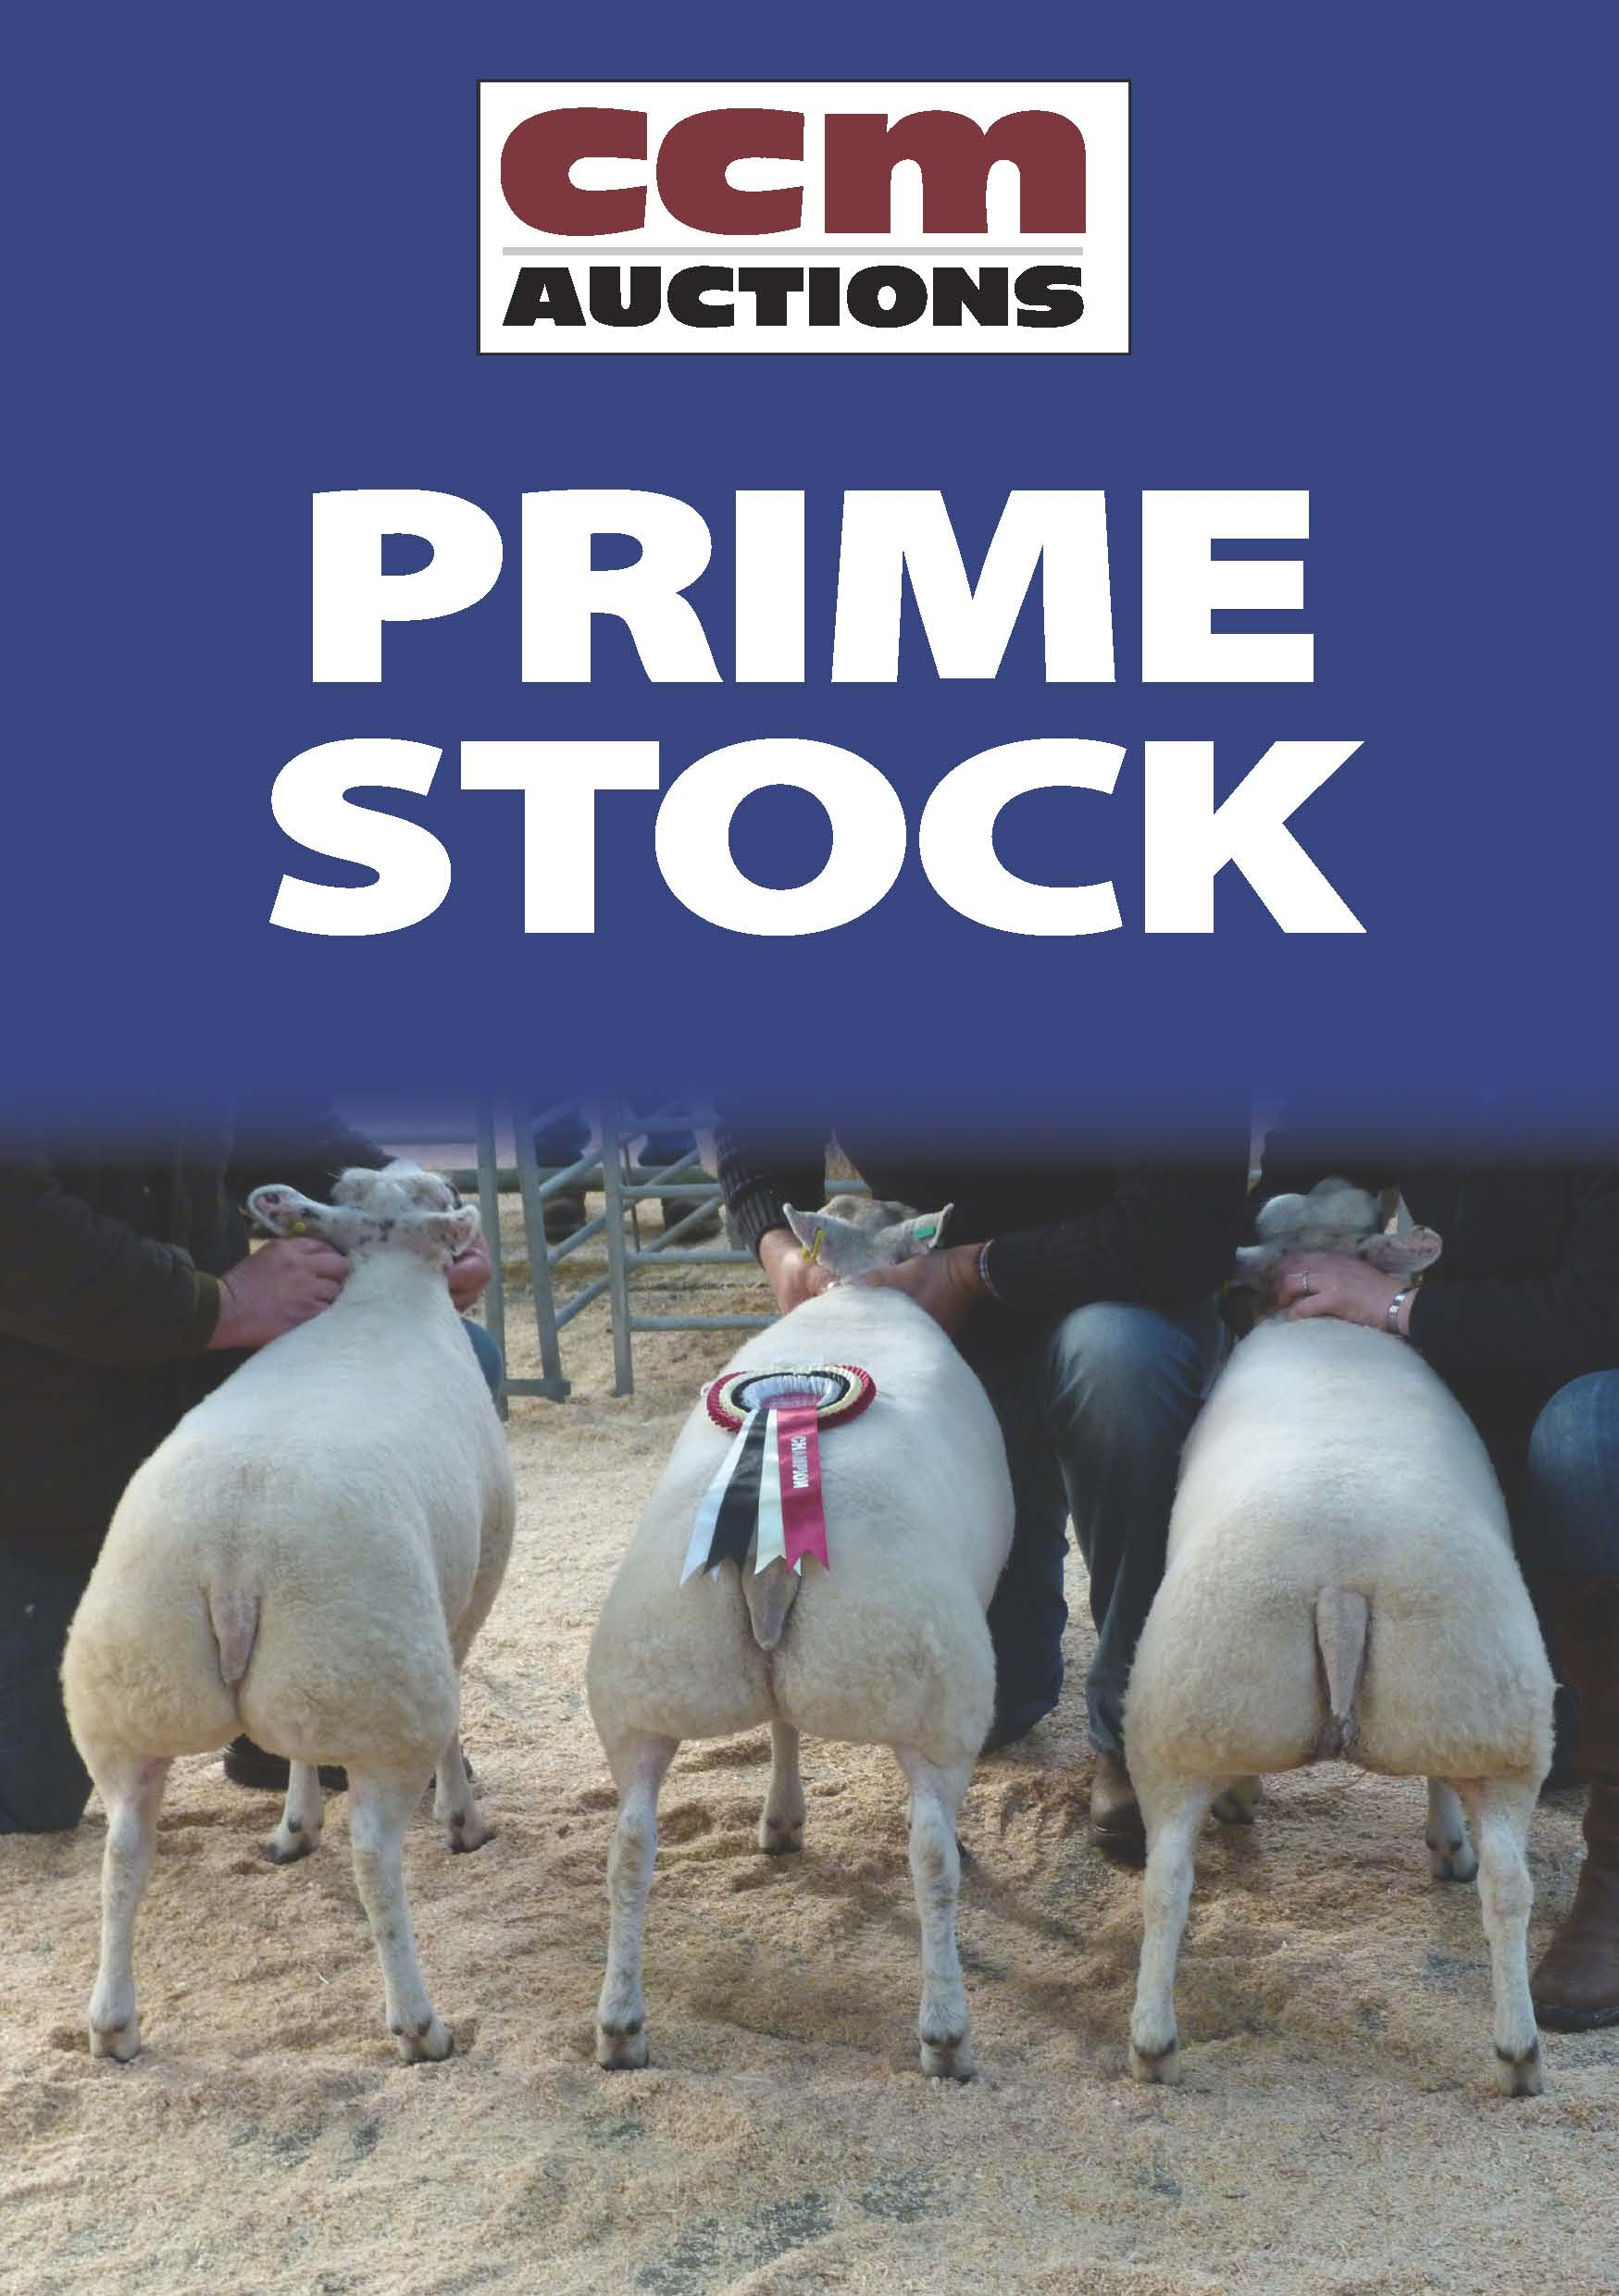 PRIMESTOCK - MONDAY 1ST JUNE 2015 PRESS